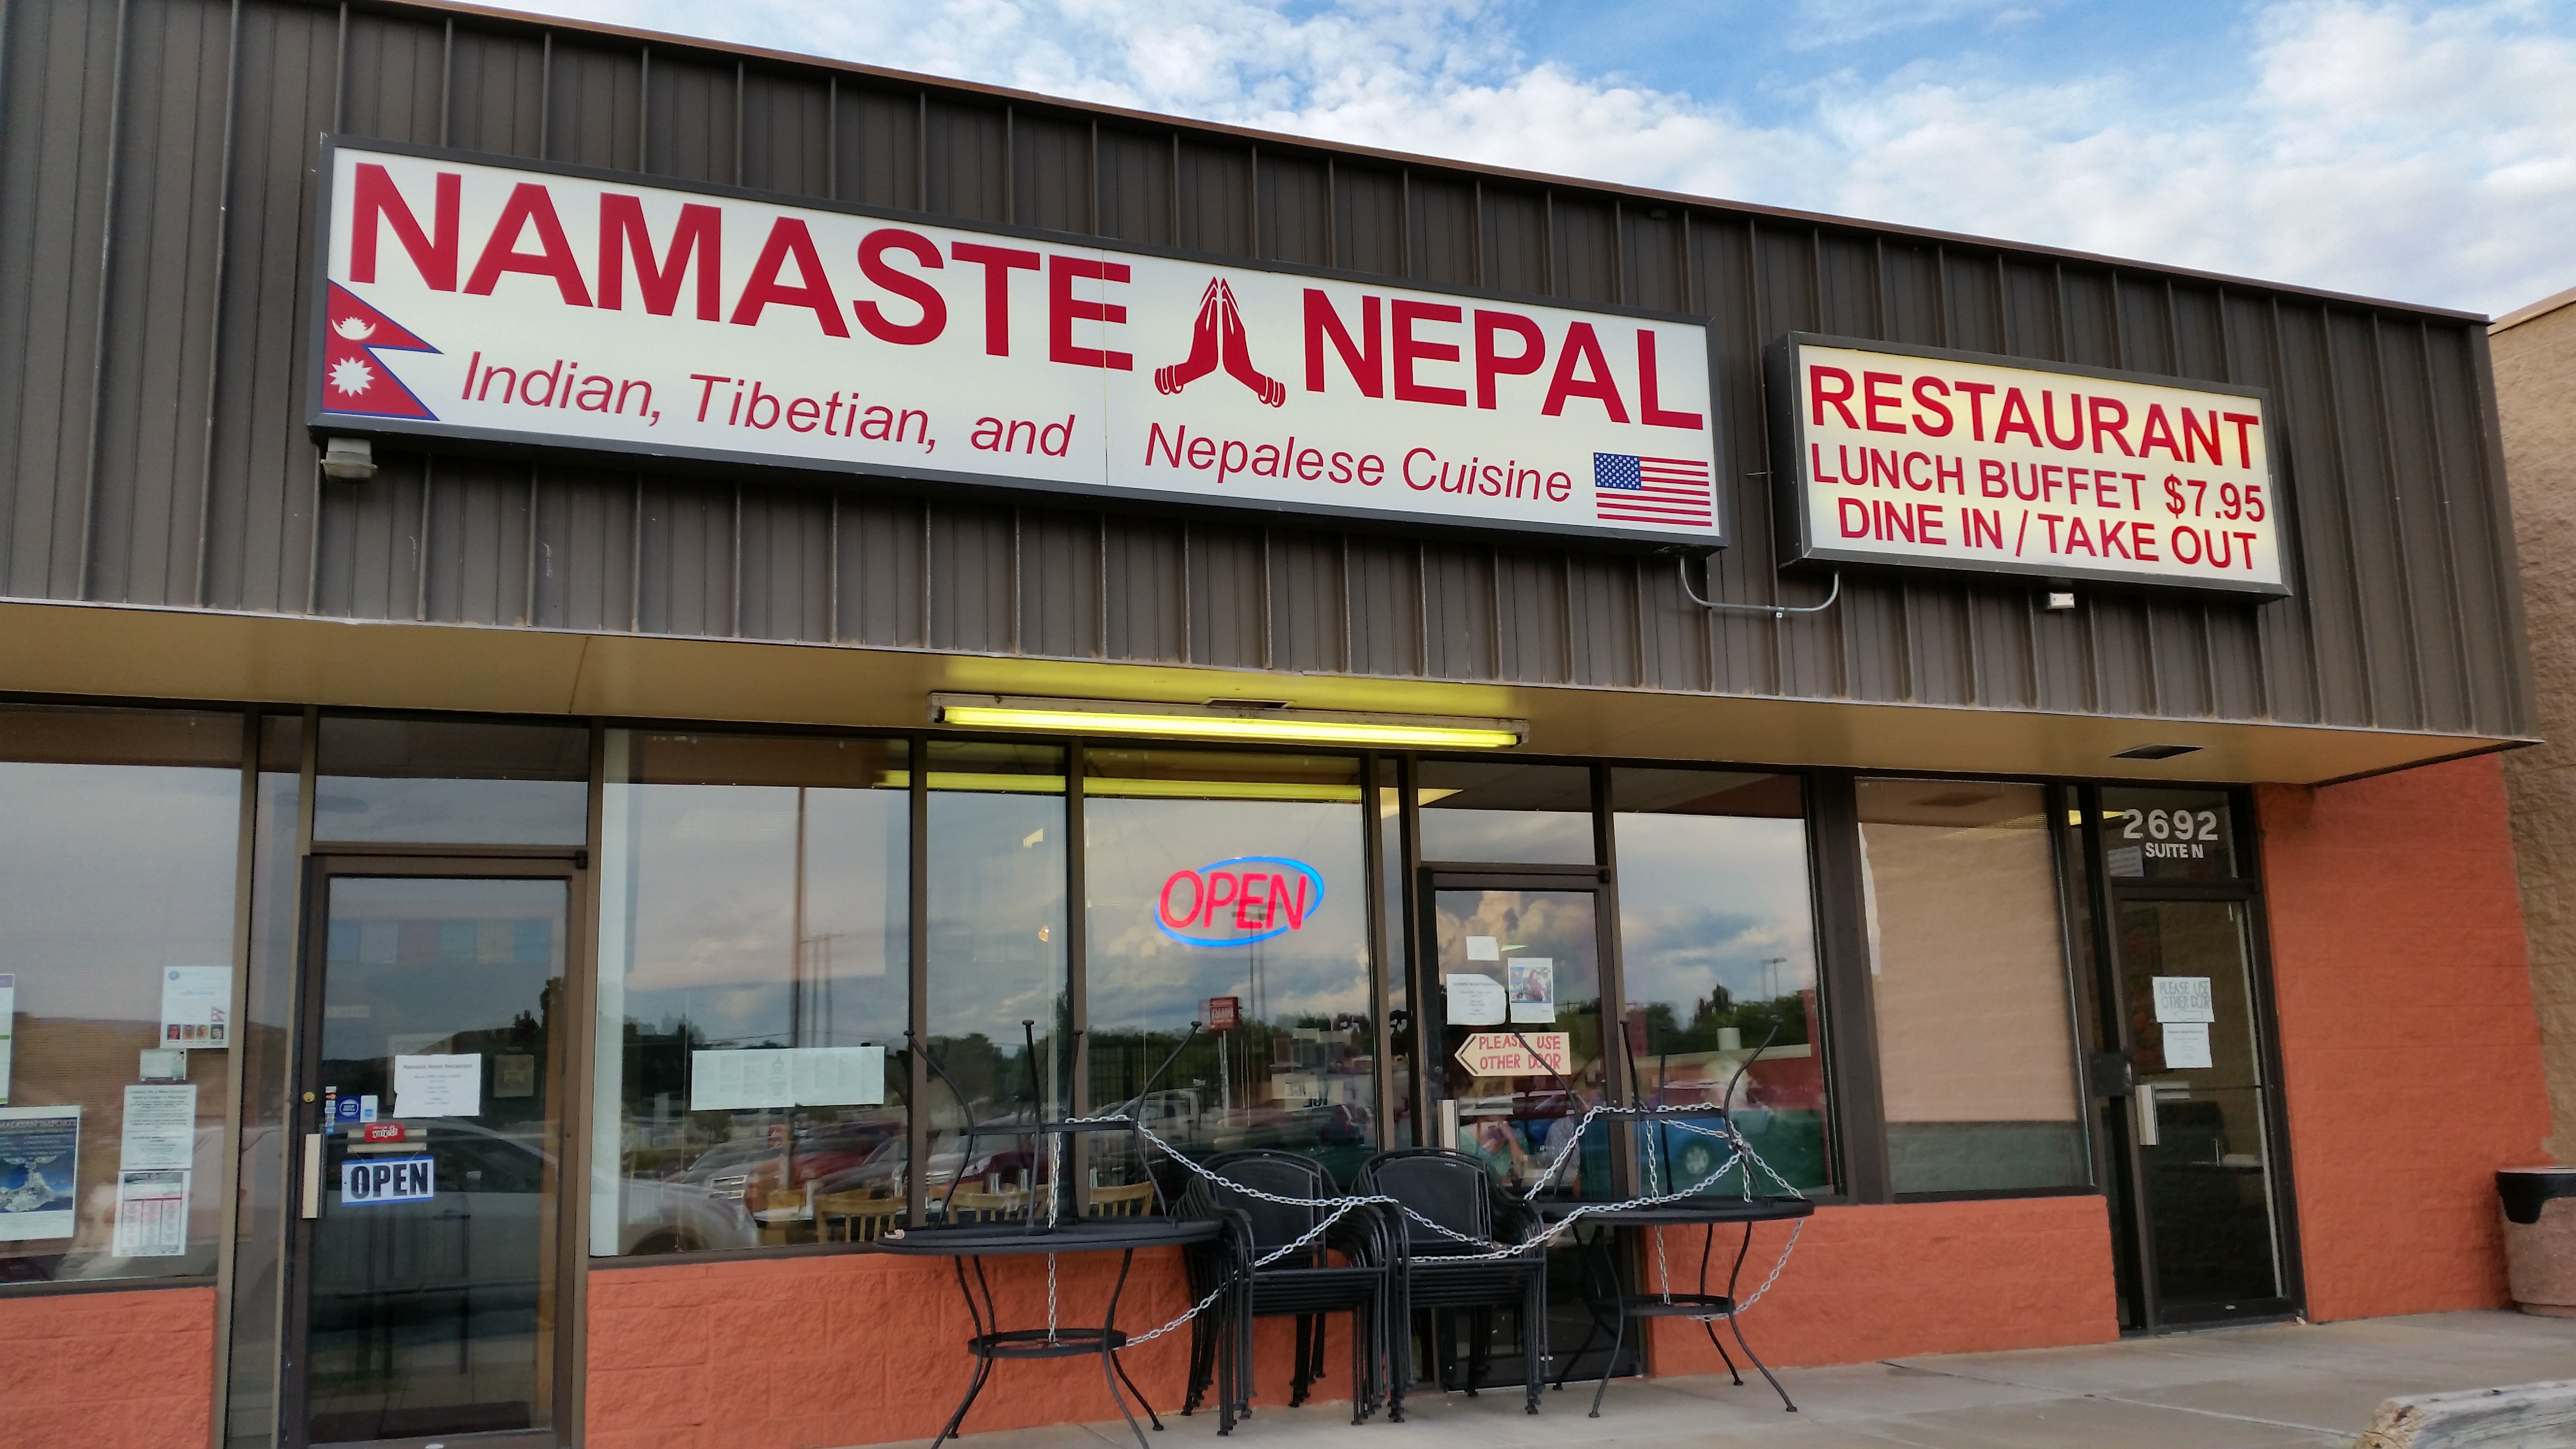 Namaste Nepal One Of The Terrific New Restaurants In Grand Junction That Add Diversity To